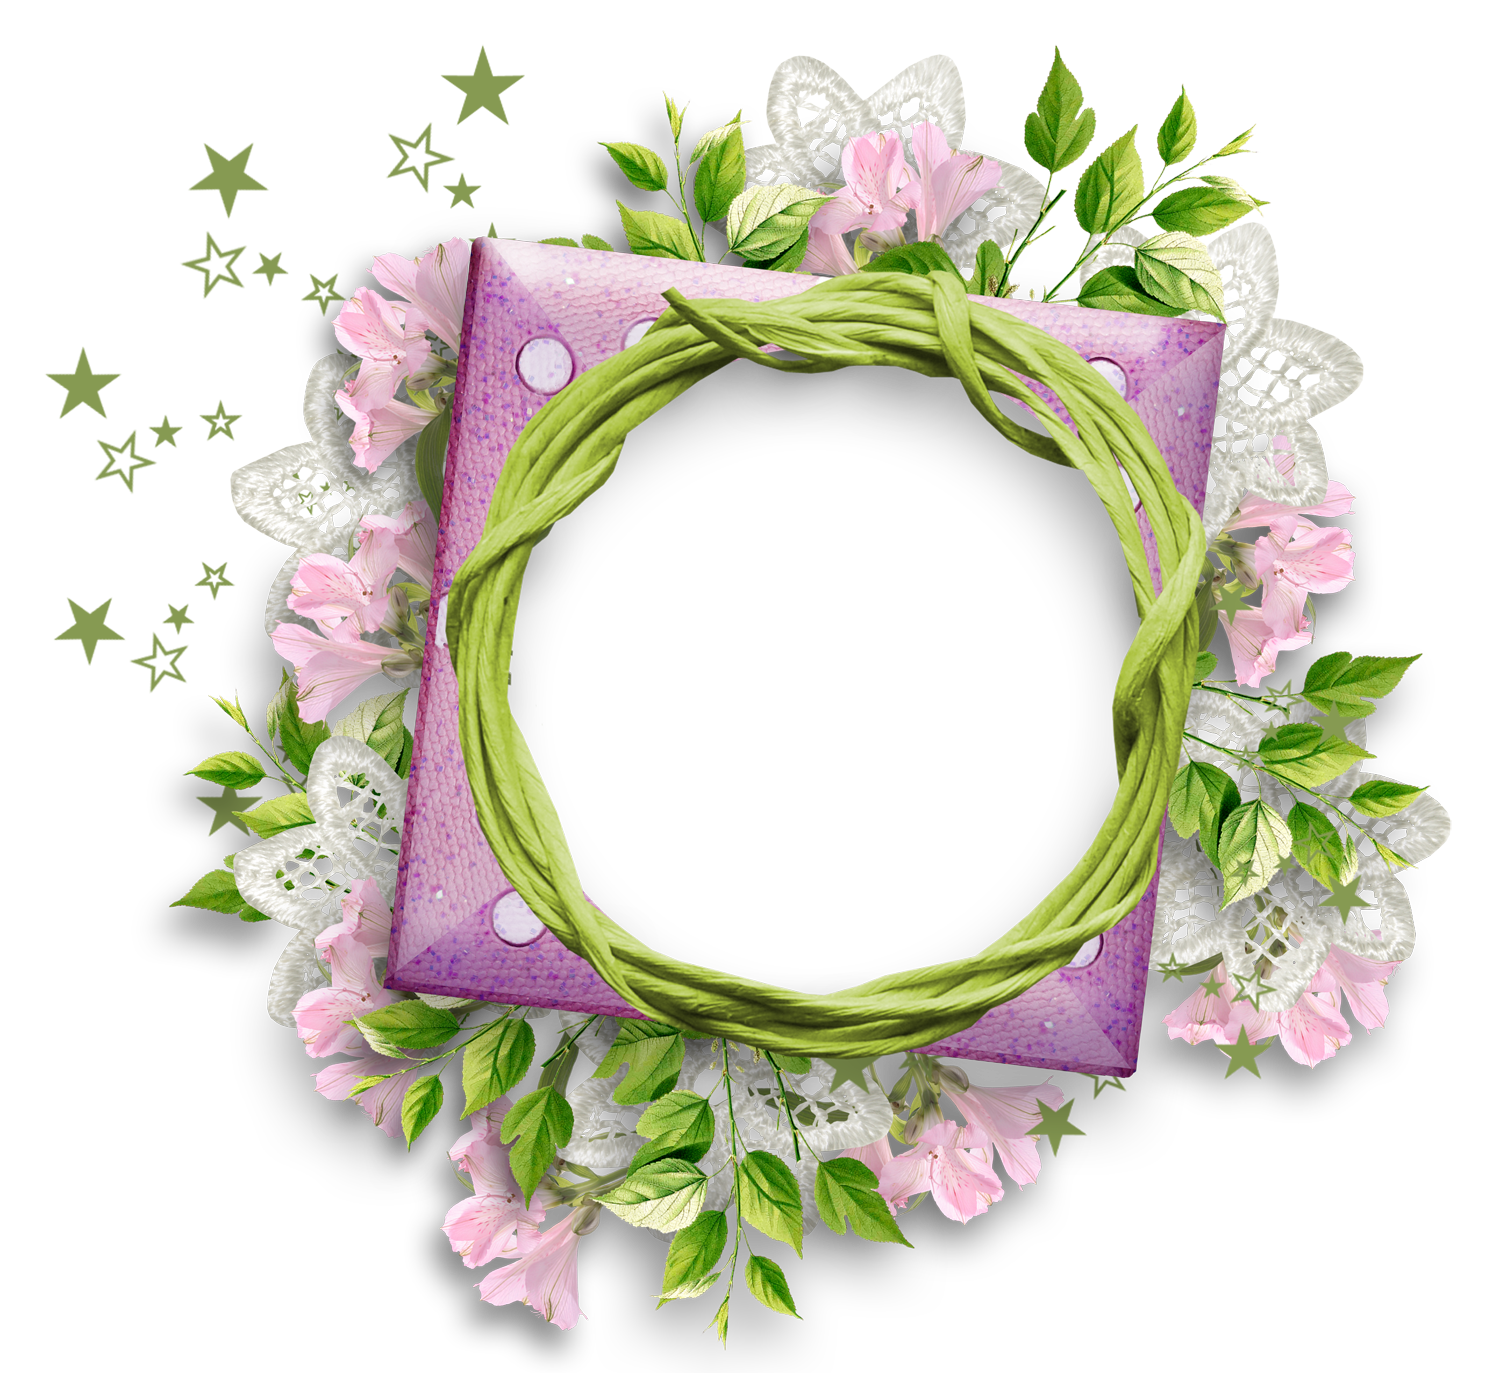 Laces clipart wreath. Purple frame with flowers